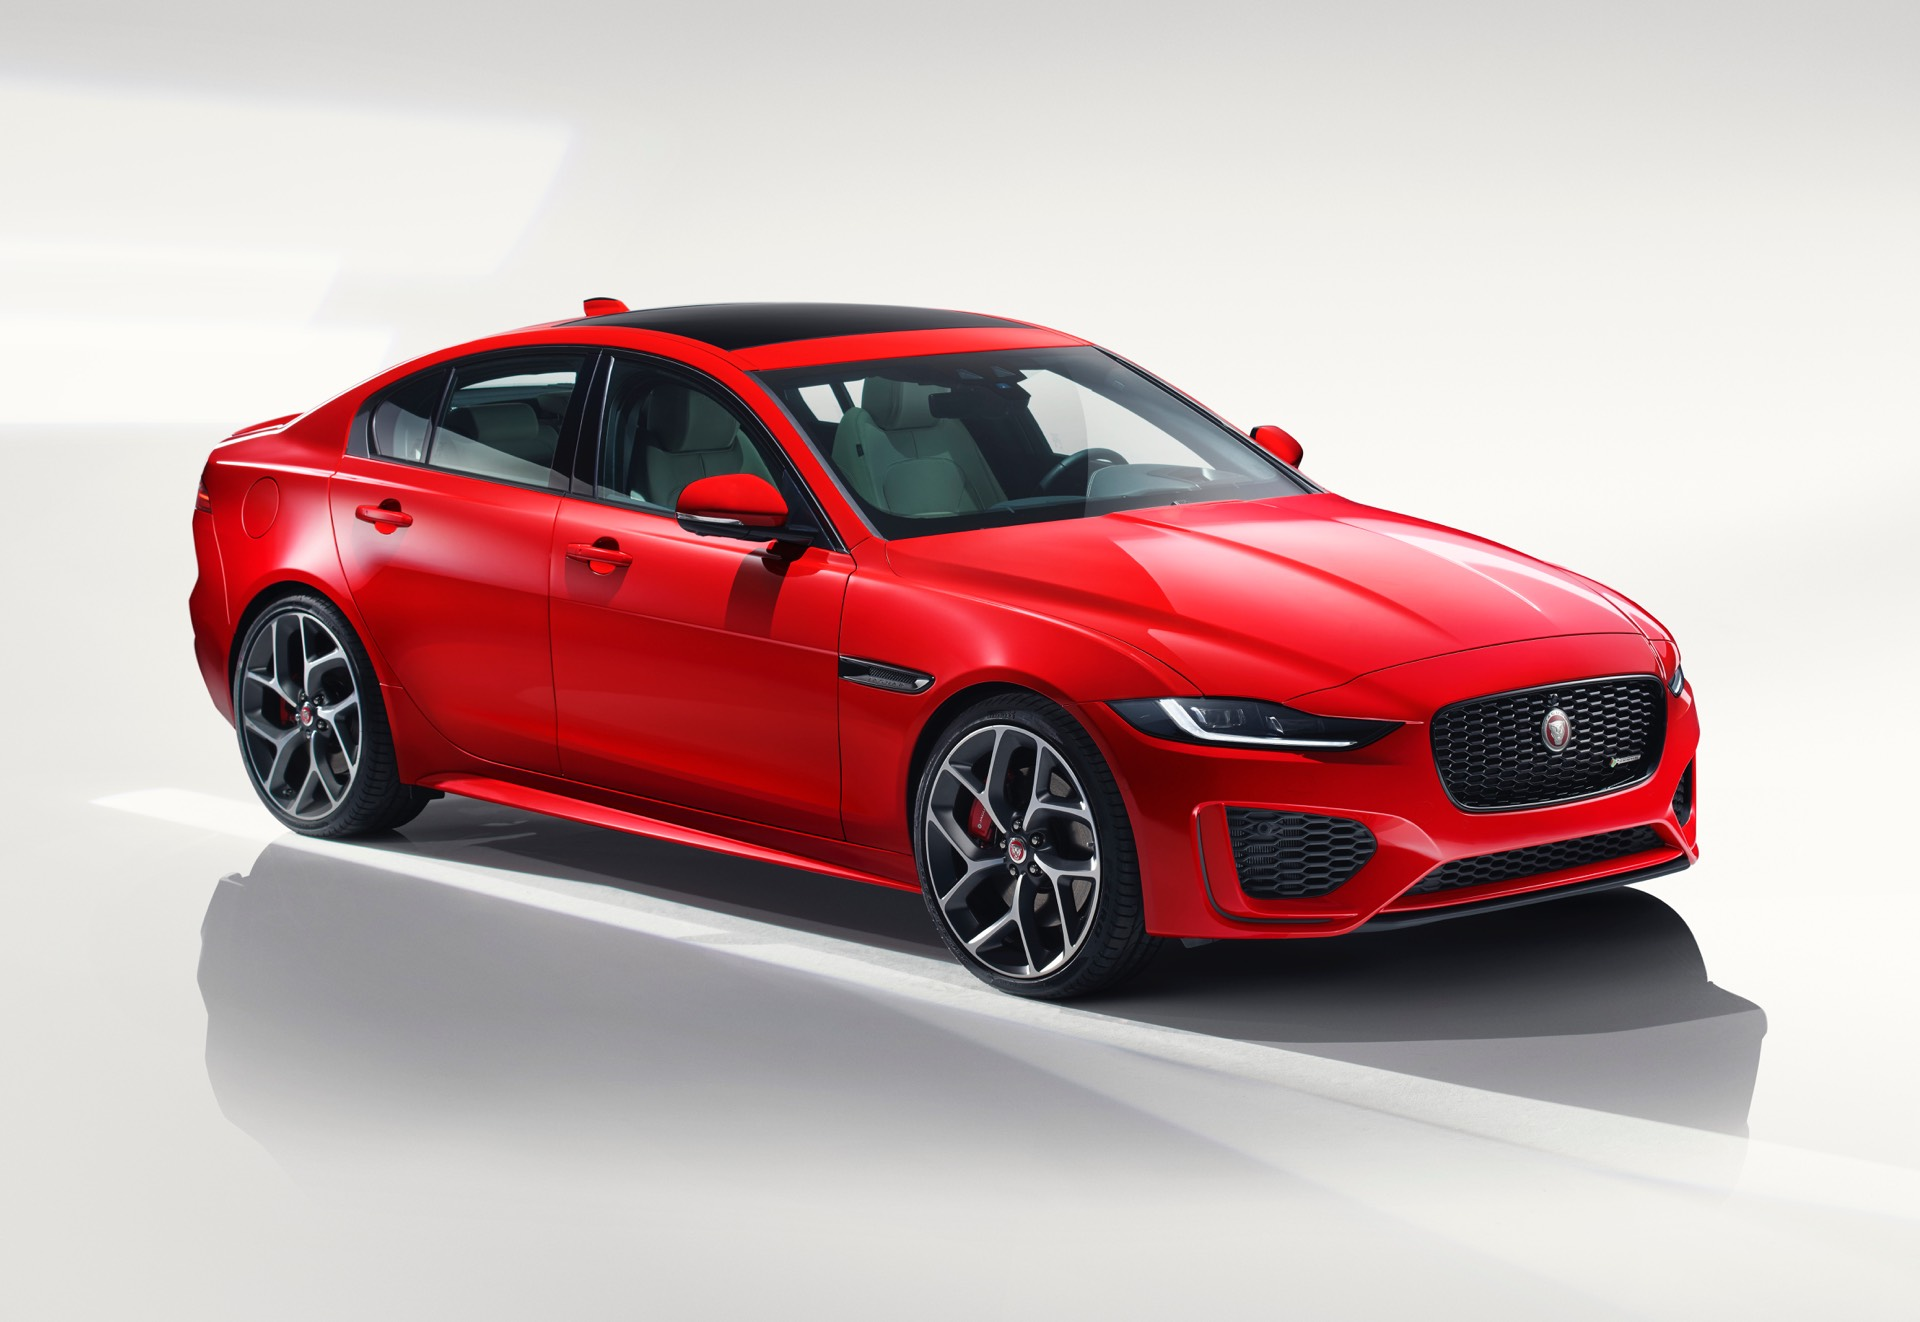 new jaguar xe released in london with updated interior. Black Bedroom Furniture Sets. Home Design Ideas